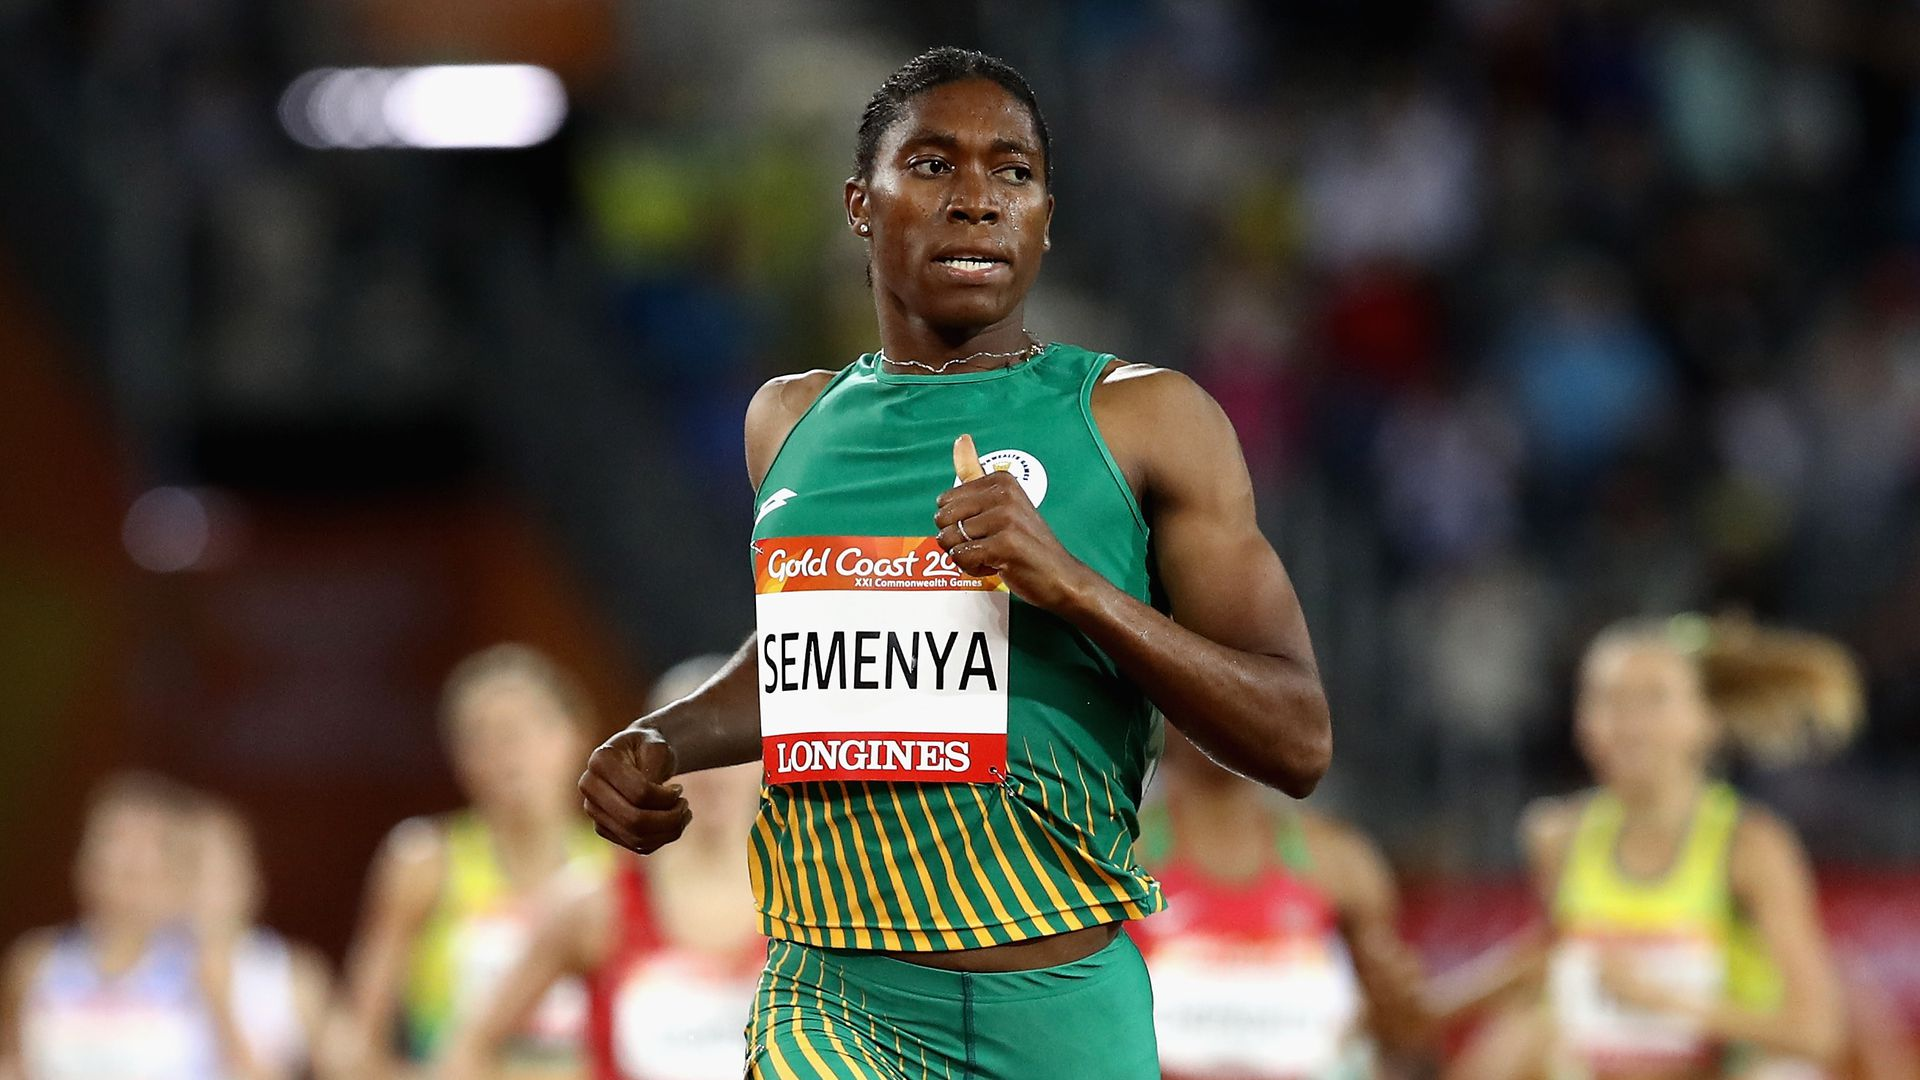 Caster Semenya of South Africa wins gold in the Women's 1500 metres final at the Gold Coast 2018 Commonwealth Games at Carrara Stadium on April 10, 2018.